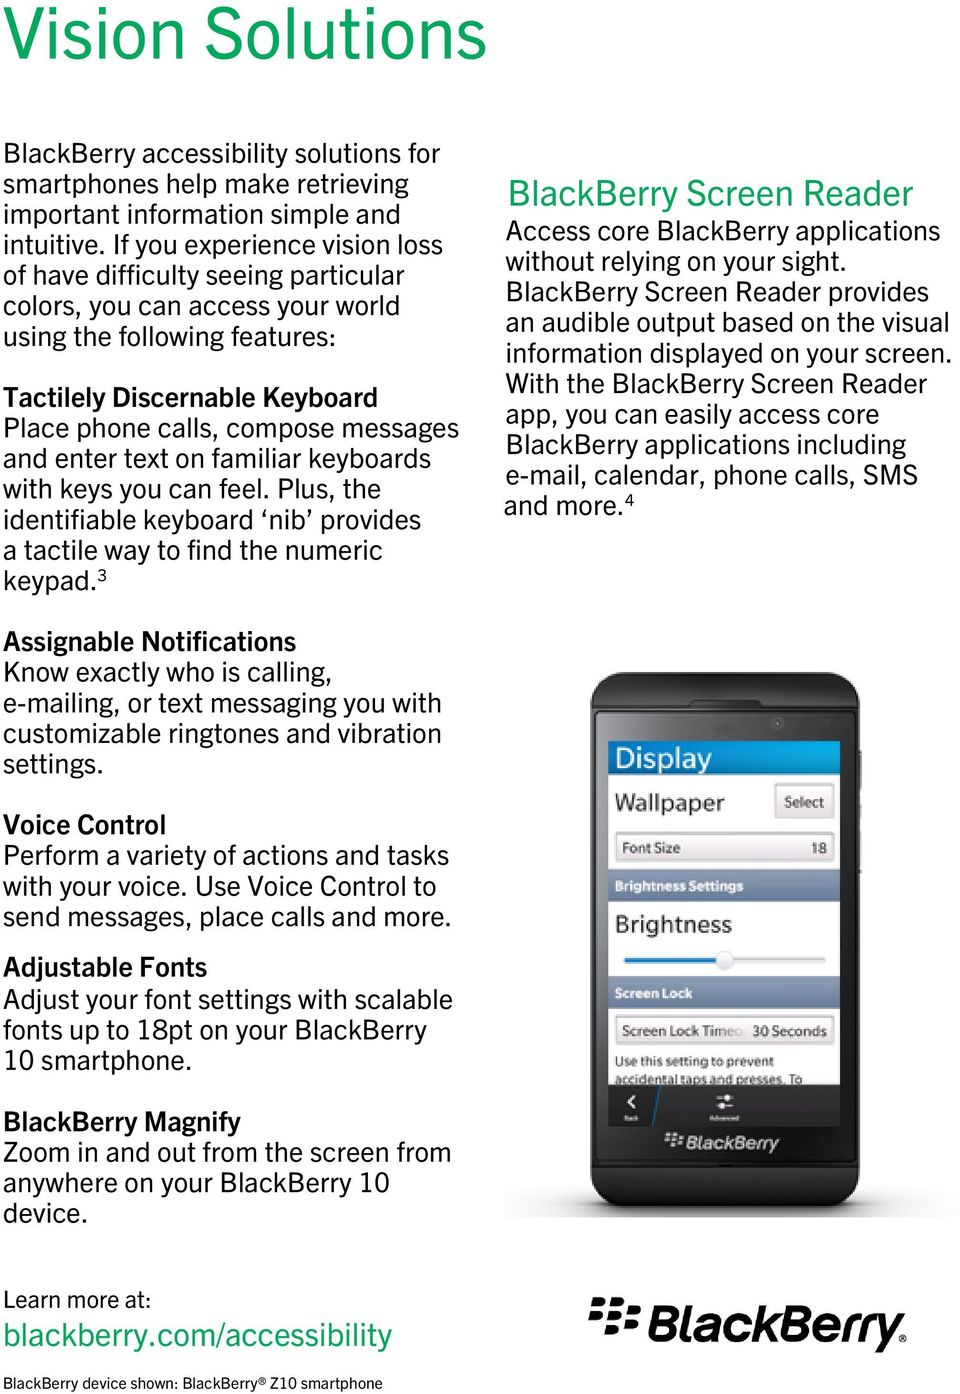 BlackBerry 10 Accessibility Solutions for People with Disabilities - PDF